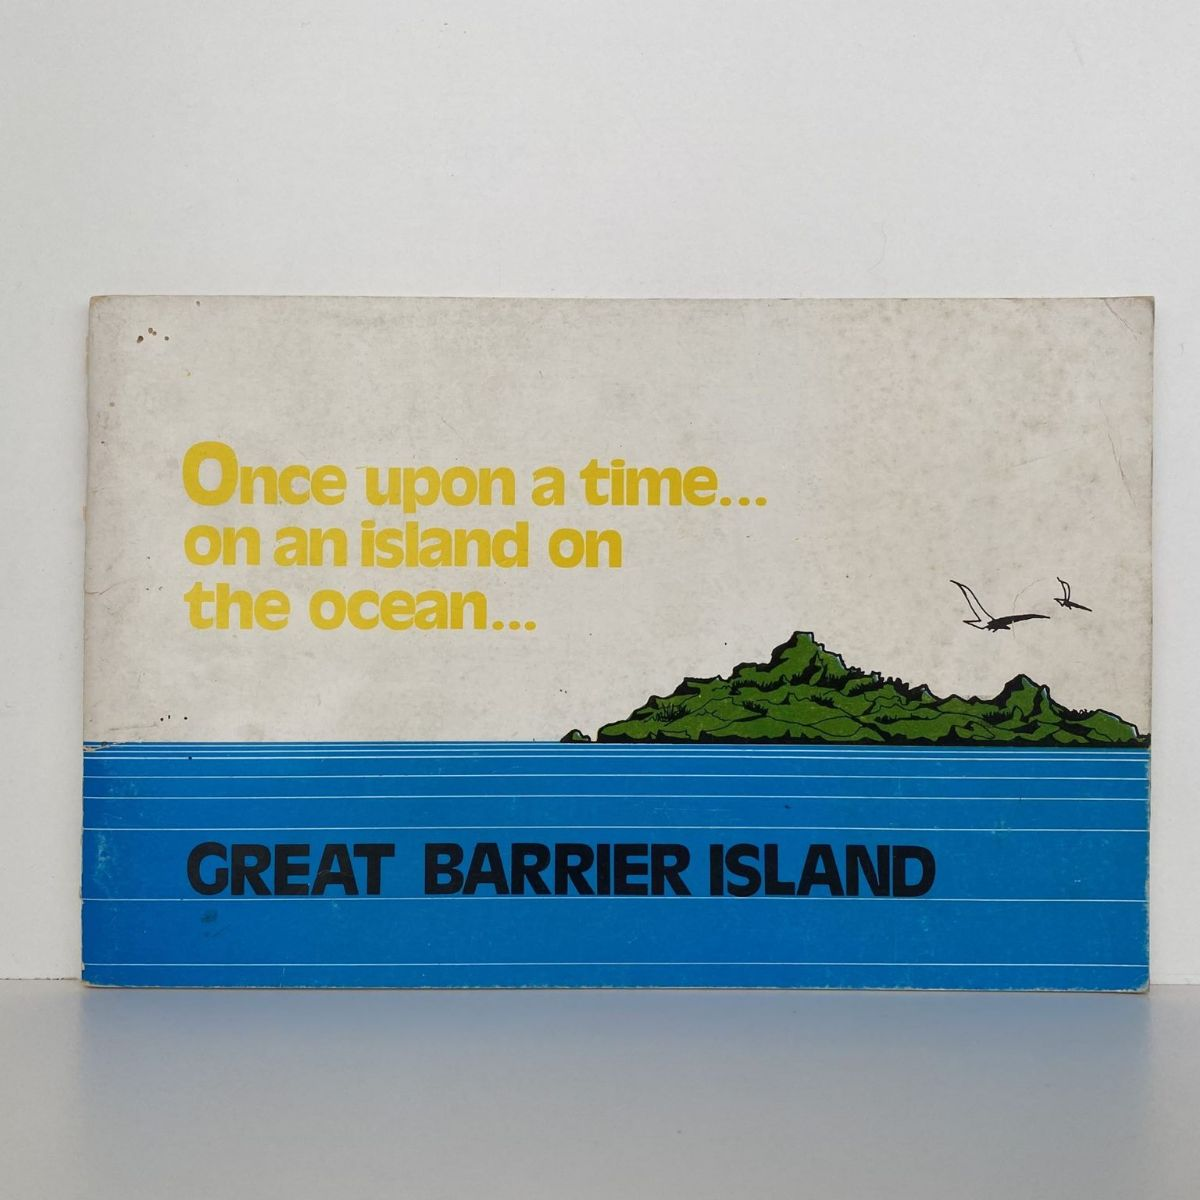 GREAT BARRIER ISLAND: Once upon a time on an island on the ocean